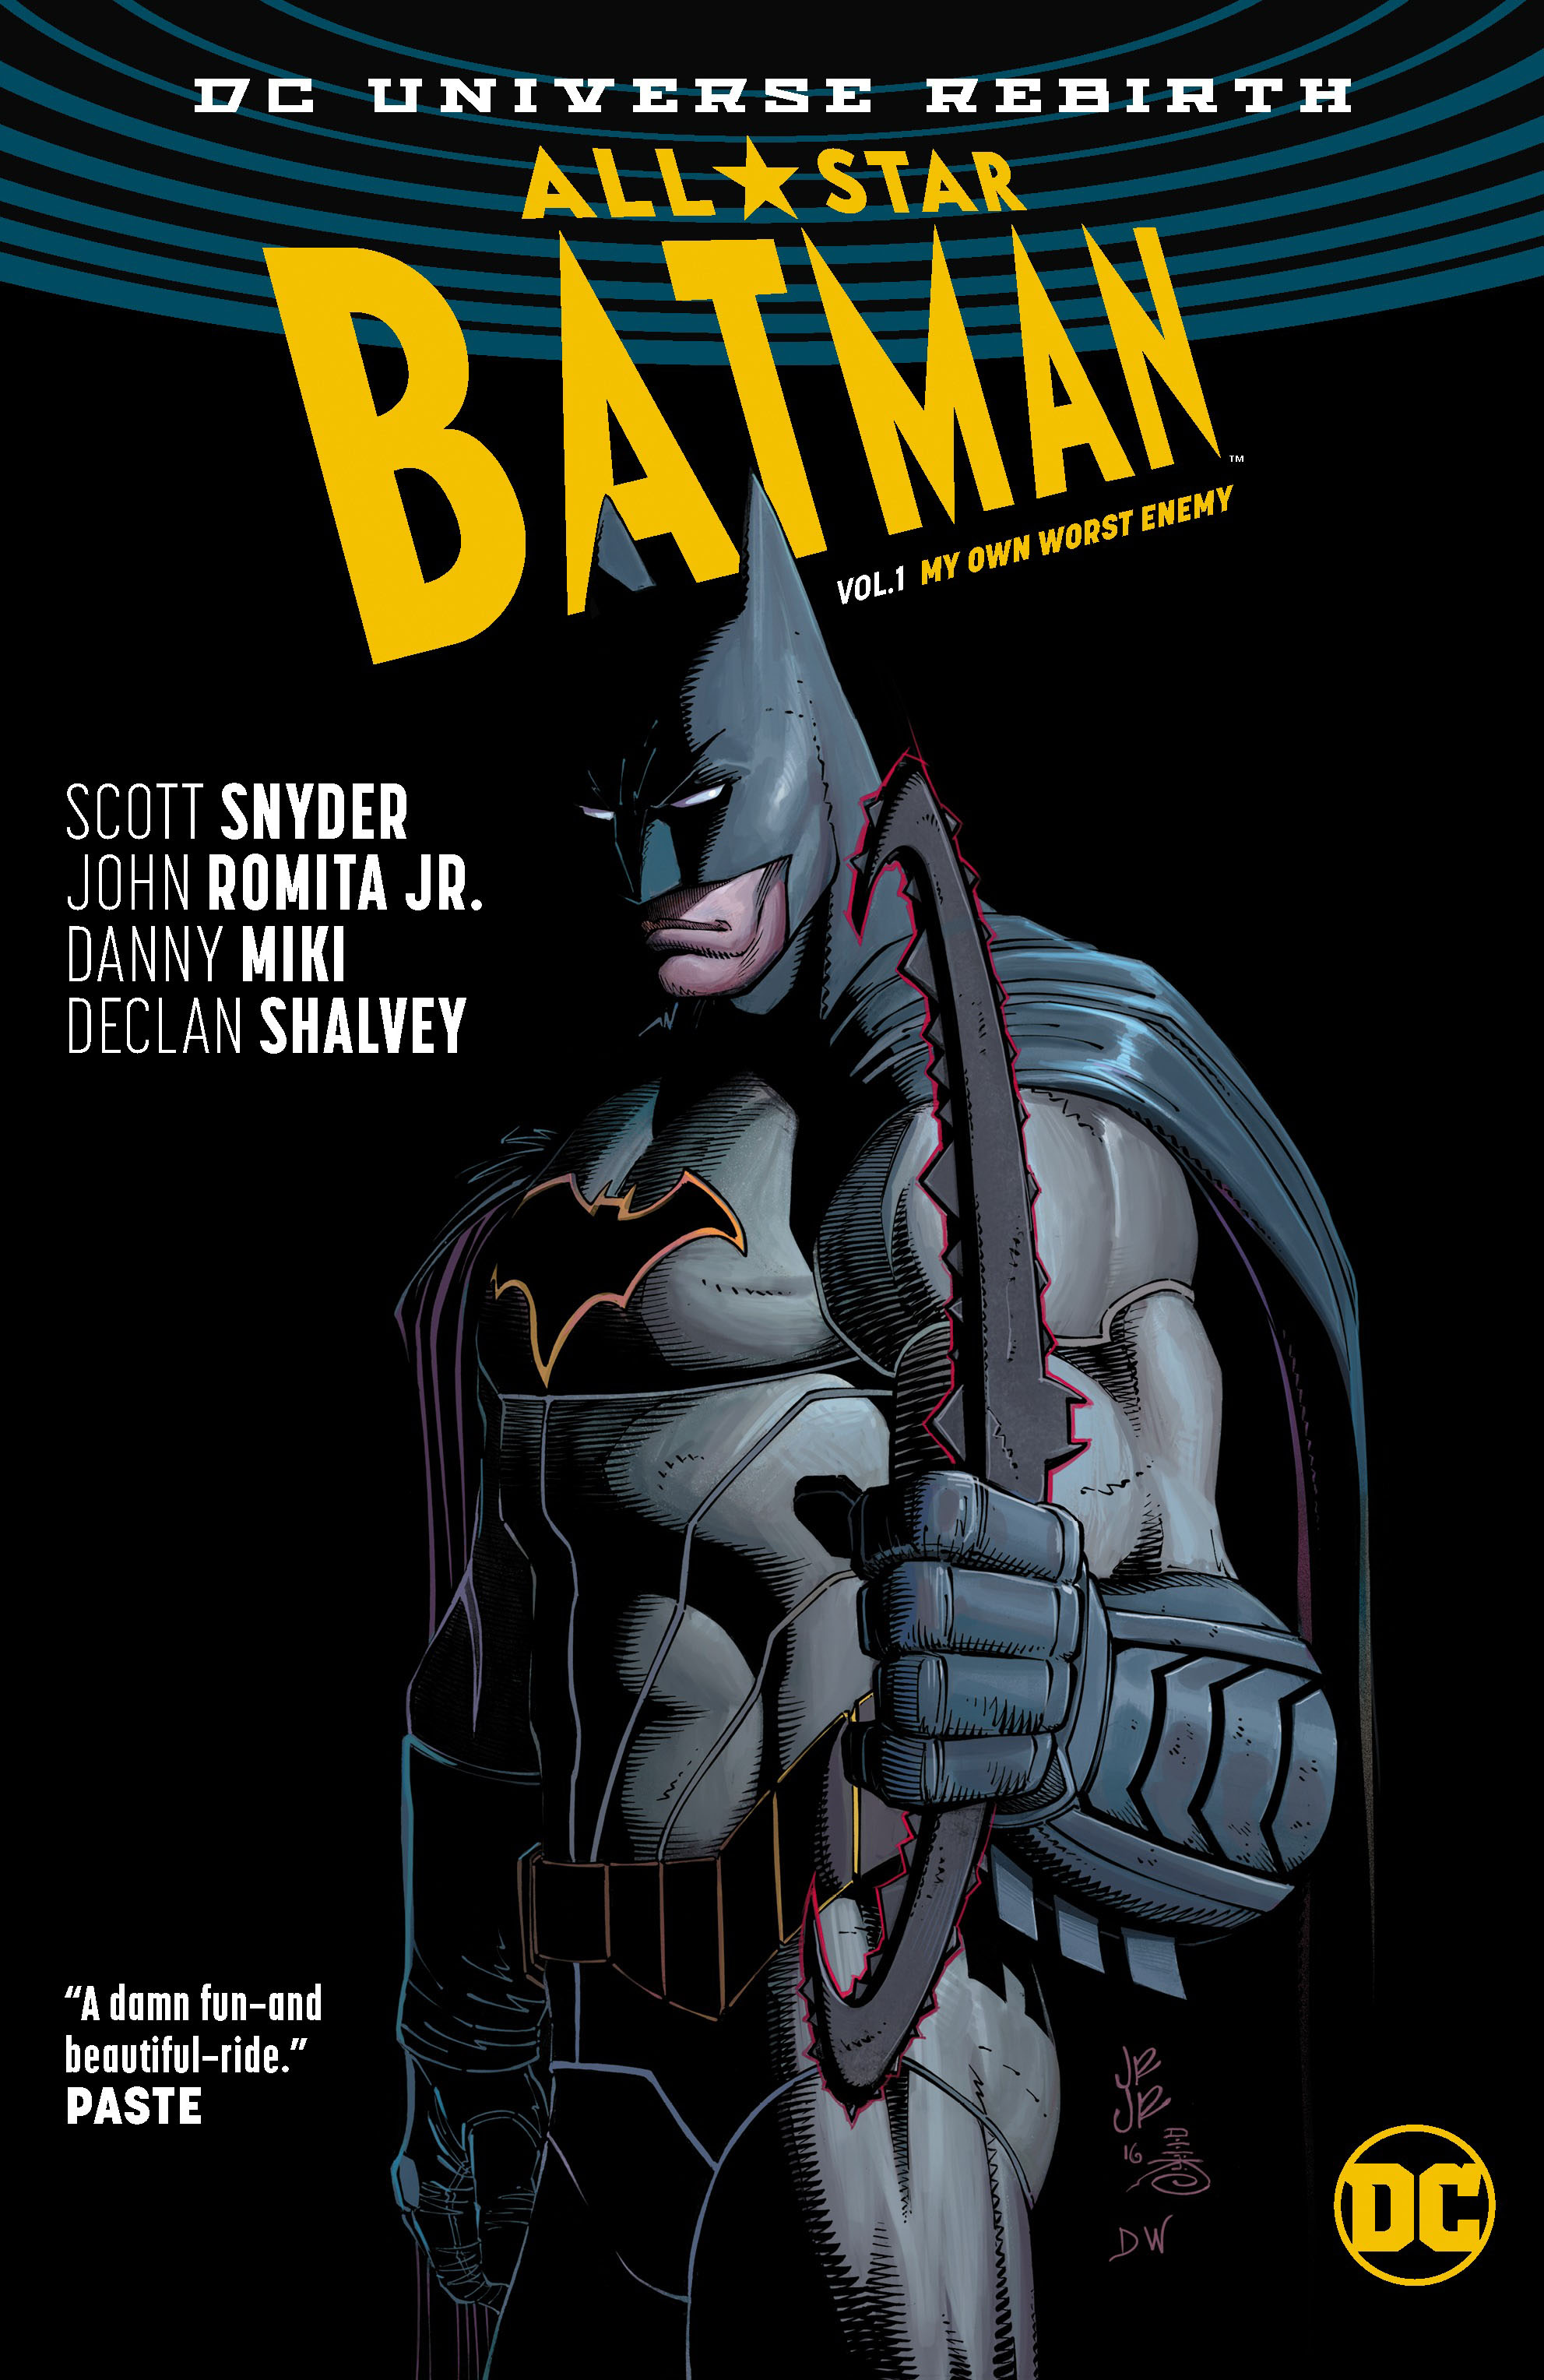 All Star Batman: Vol. 1: My Own Worst Enemy (Rebirth) graeme simsion adam sharpi parimad palad